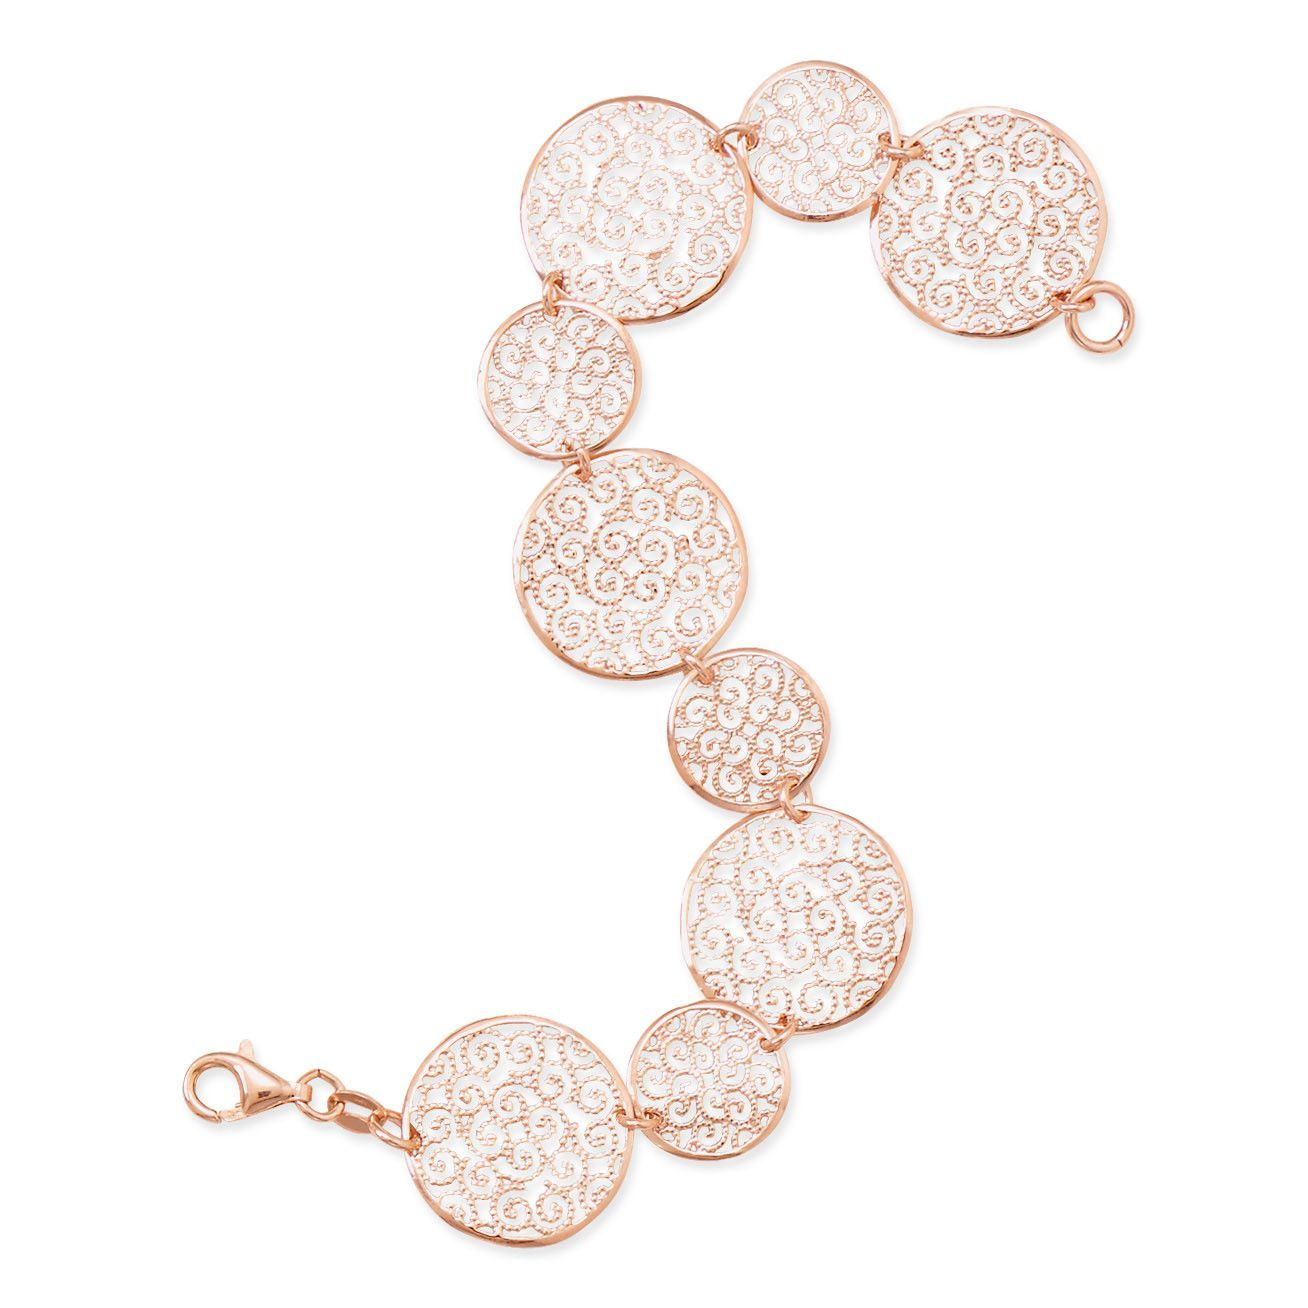 "7"" 14 Karat Rose Gold Plated Bracelet with Filigree Disc Design"